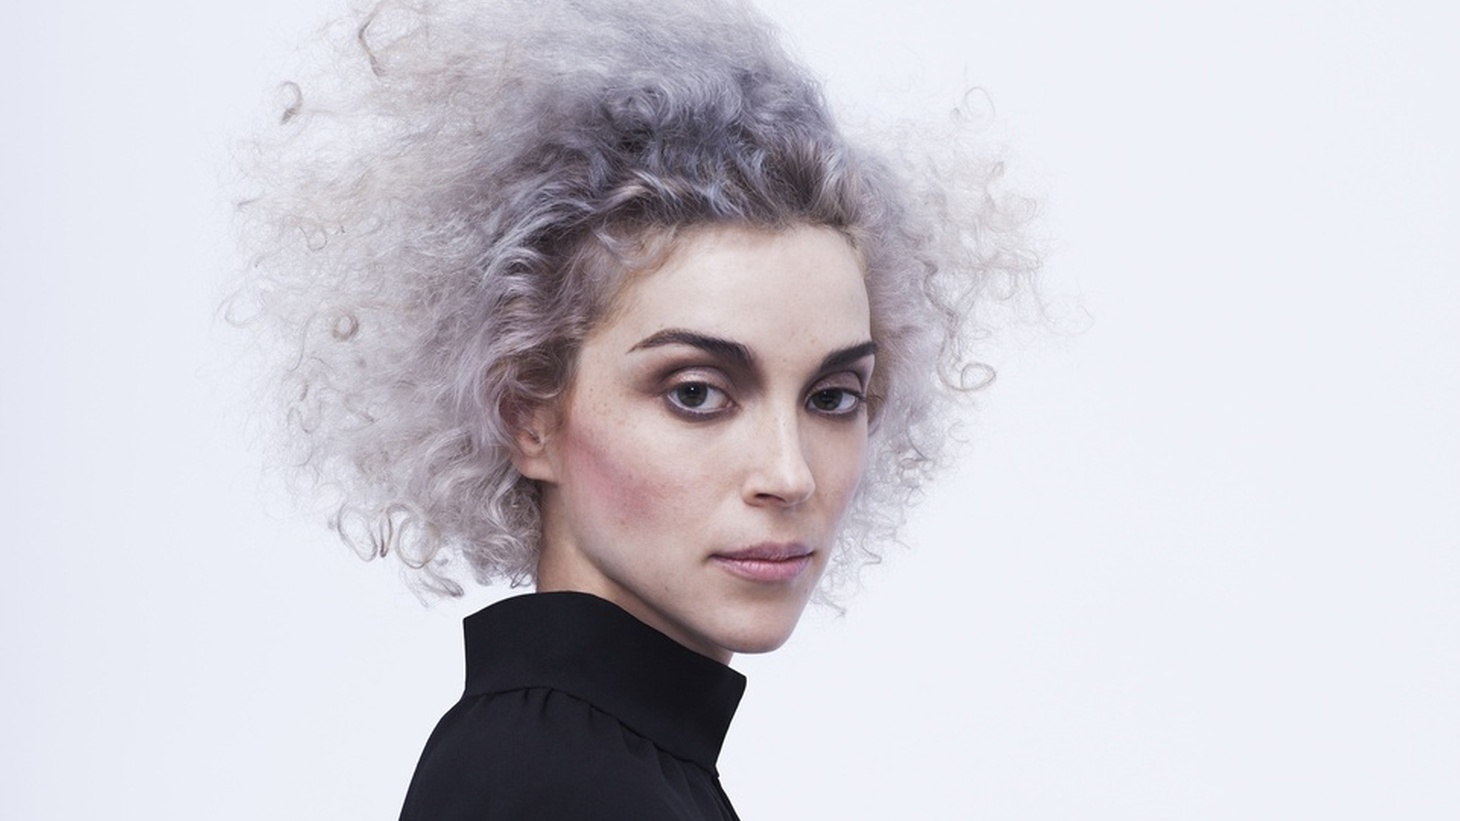 Annie Clark aka St. Vincent is a prolific and dedicated musician who won her first Grammy Award last year.